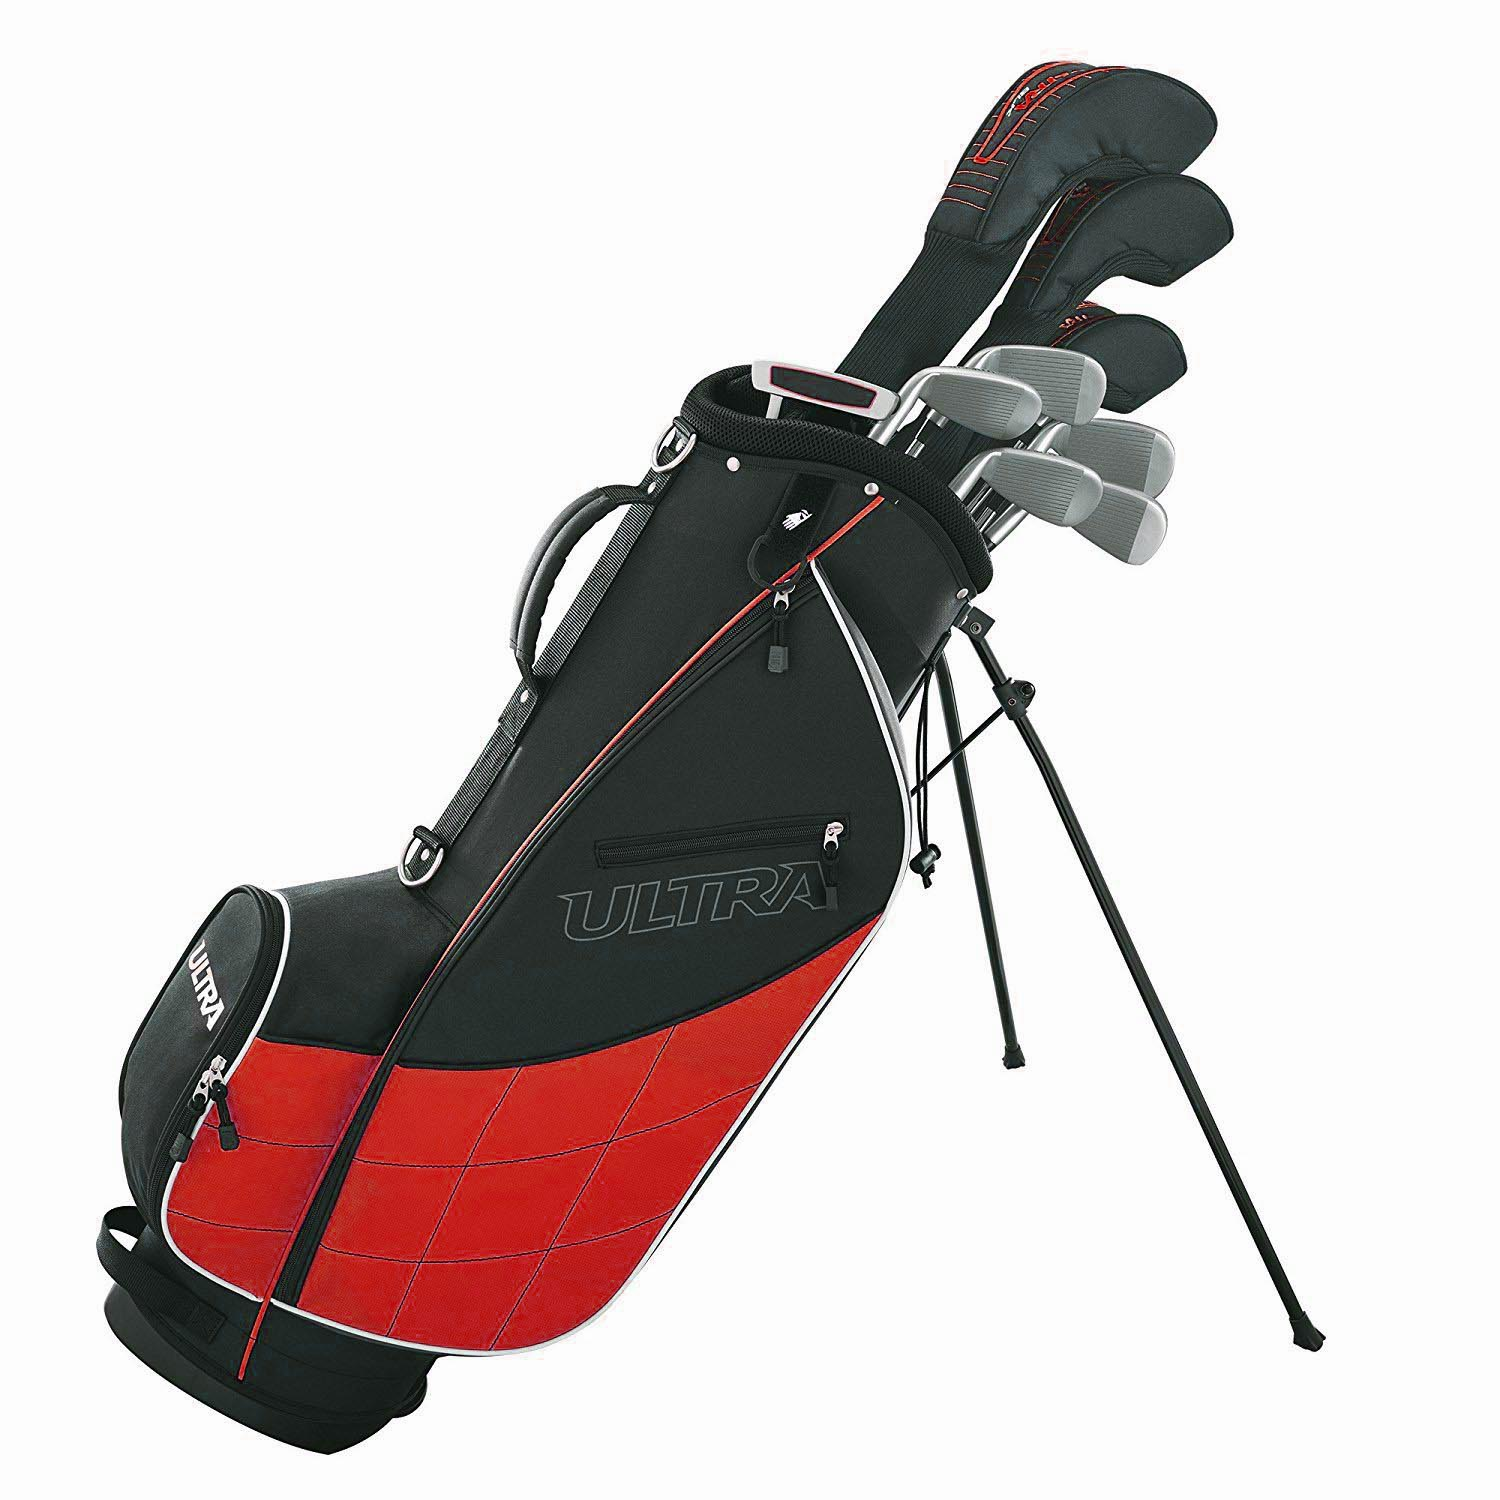 Wilson Ultra Men's 13-Piece, Left-Handed Golf Club Set w  Bag, Black & Red by Wilson